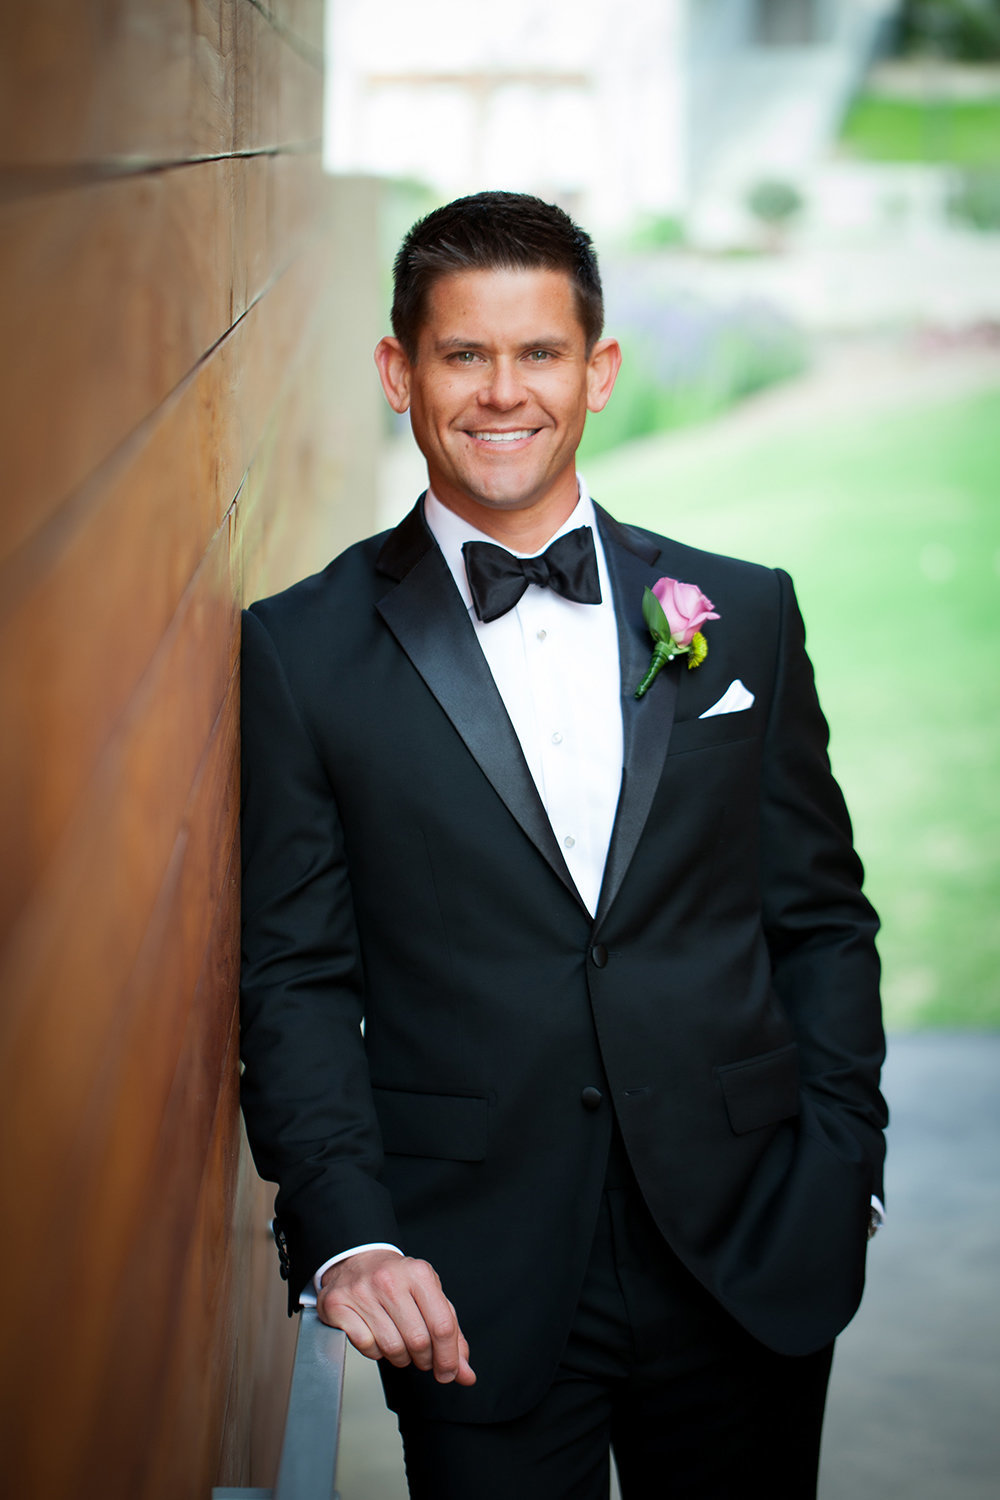 wedding photos groom smiling with nice tux